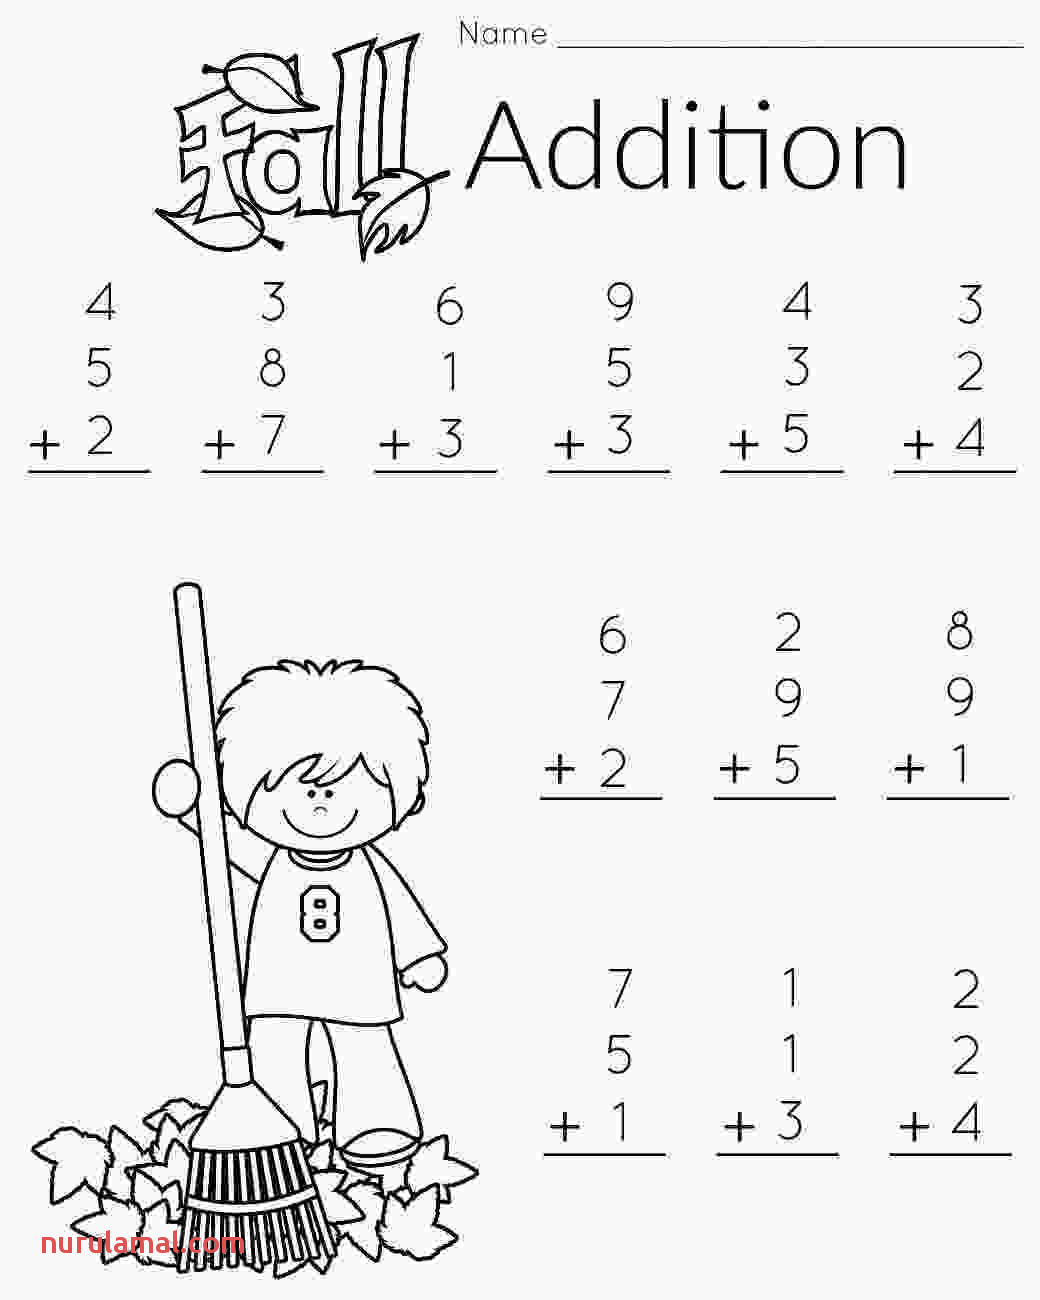 kids worksheet formulas for fun worksheets year olds math facts addition to linking sounds exercises pdf free writing activities geometry tutor pythagorean theorem practice printable